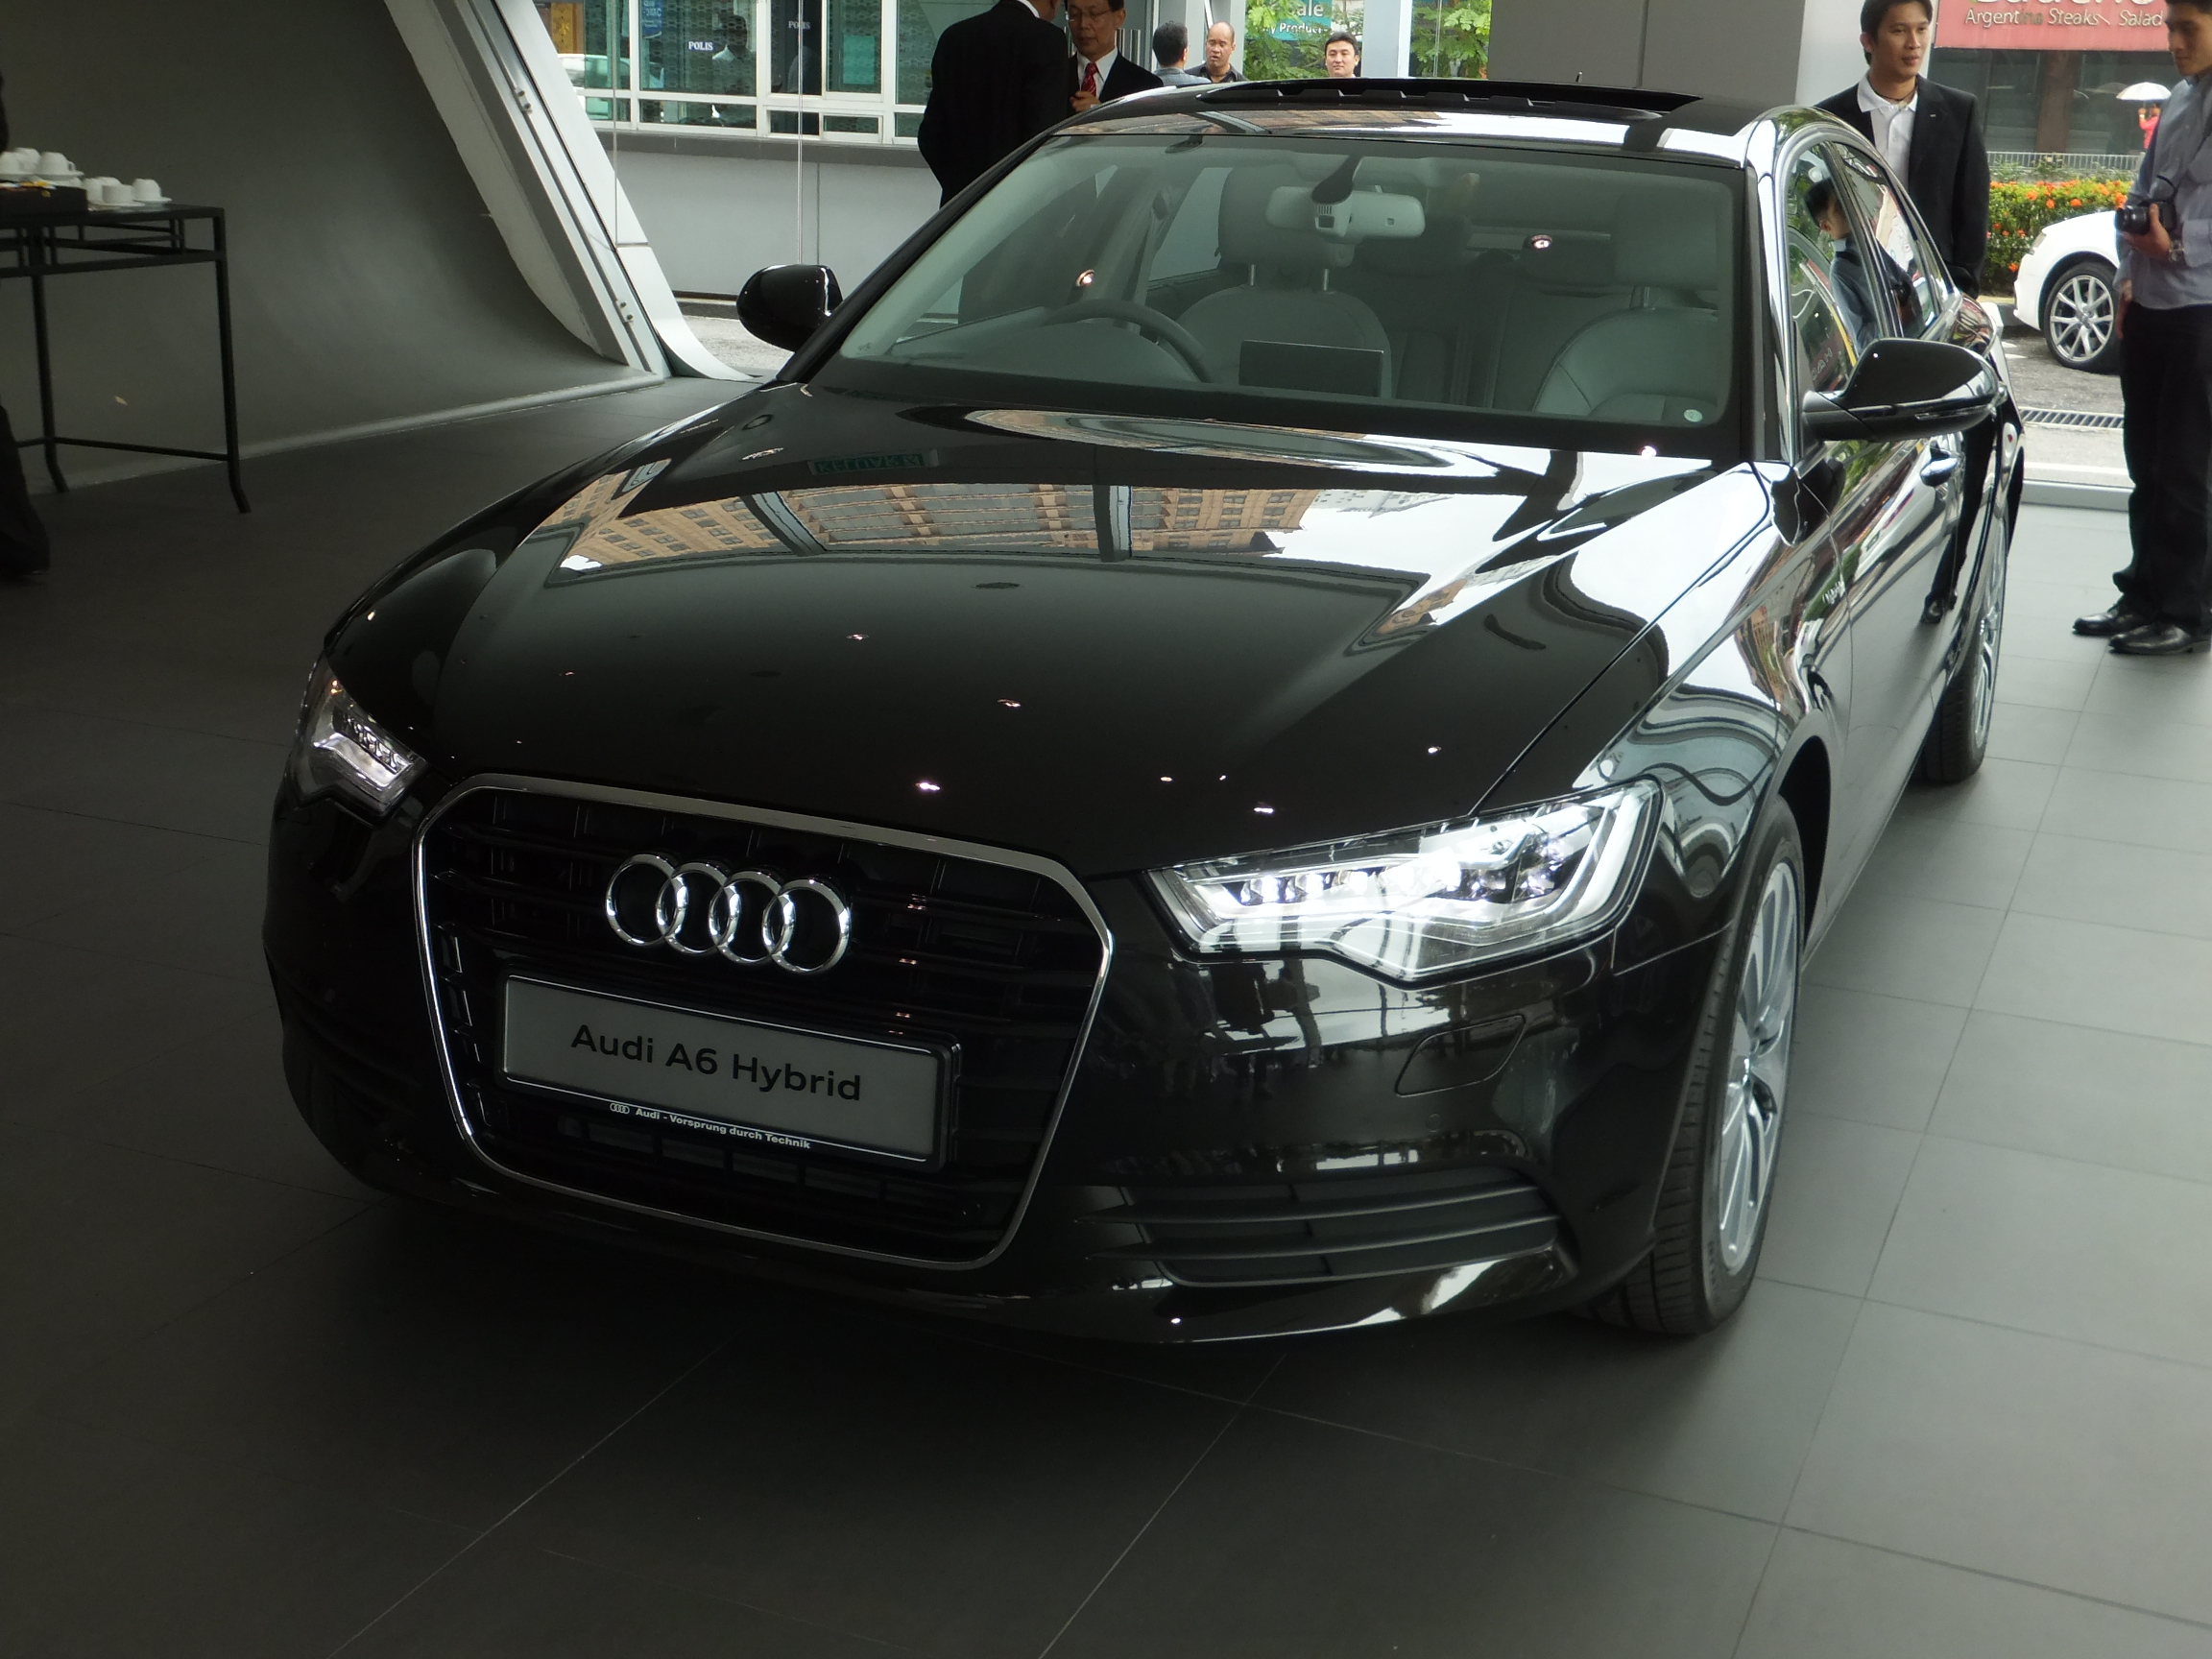 Audi A6 Hybrid Officially Launched Rm280k Starting Price